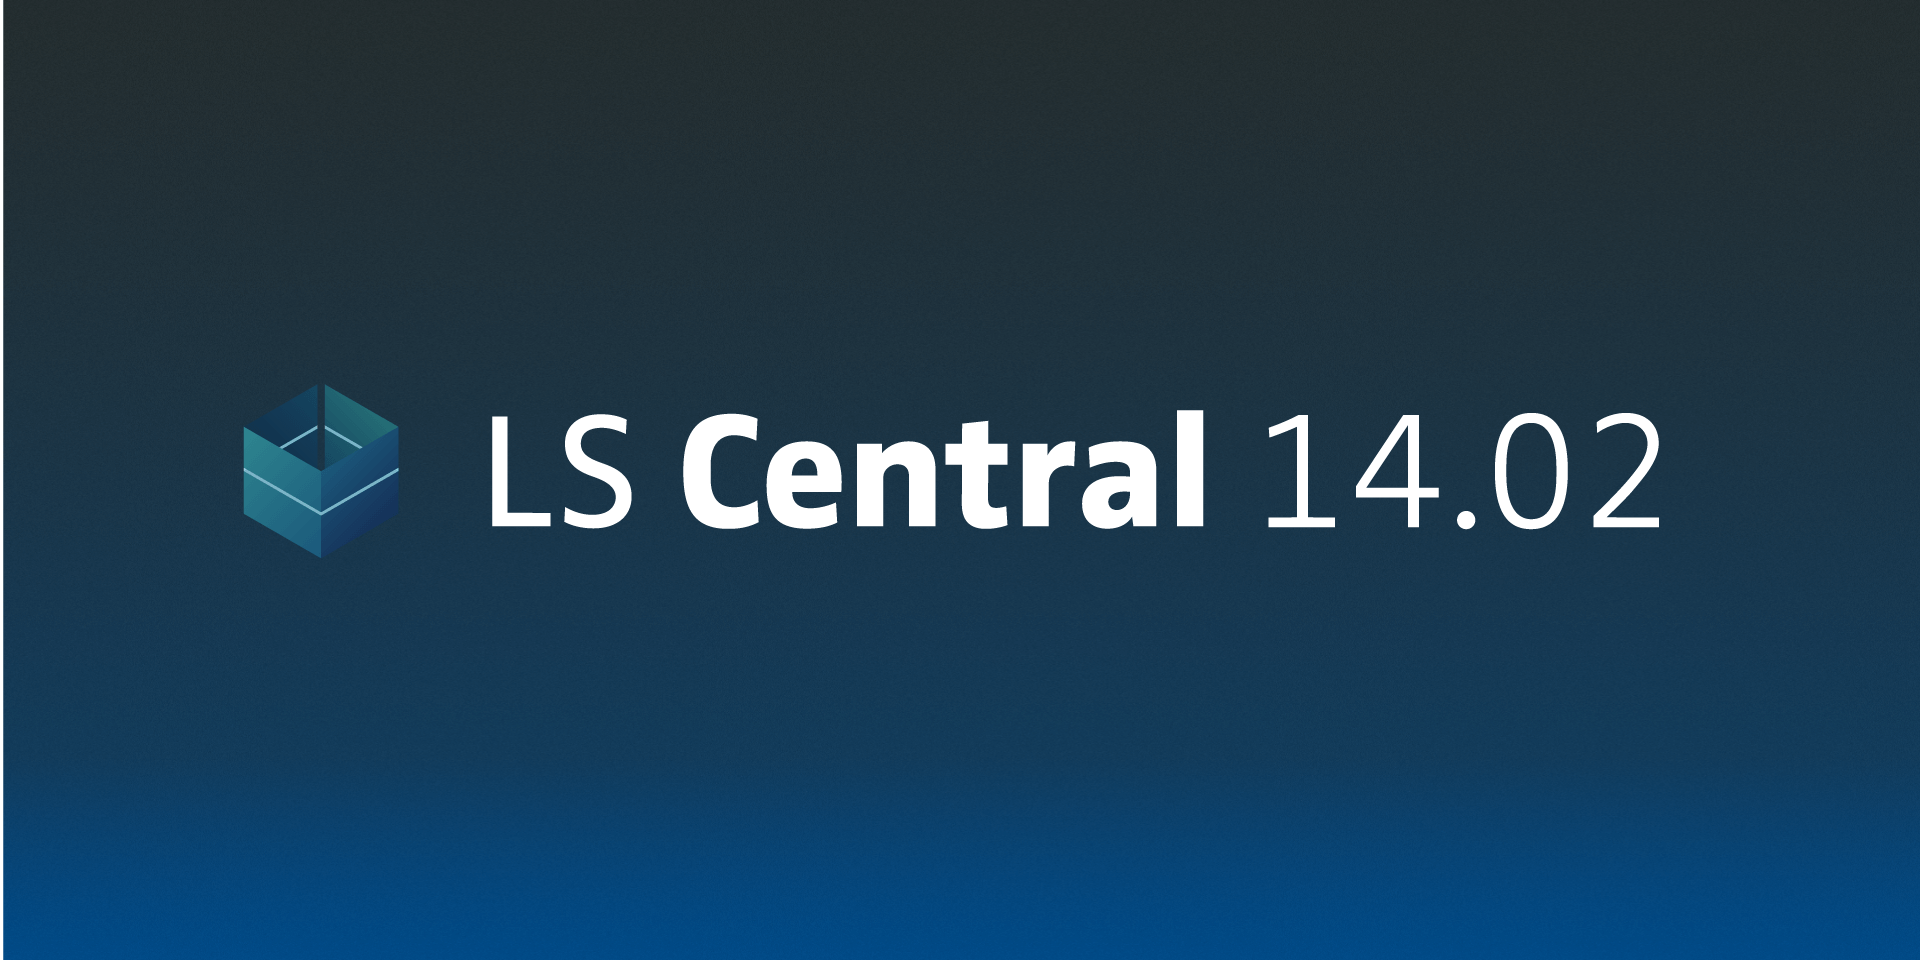 LS Central 14.02: improved replenishment and customer order, and a new forecasting tool